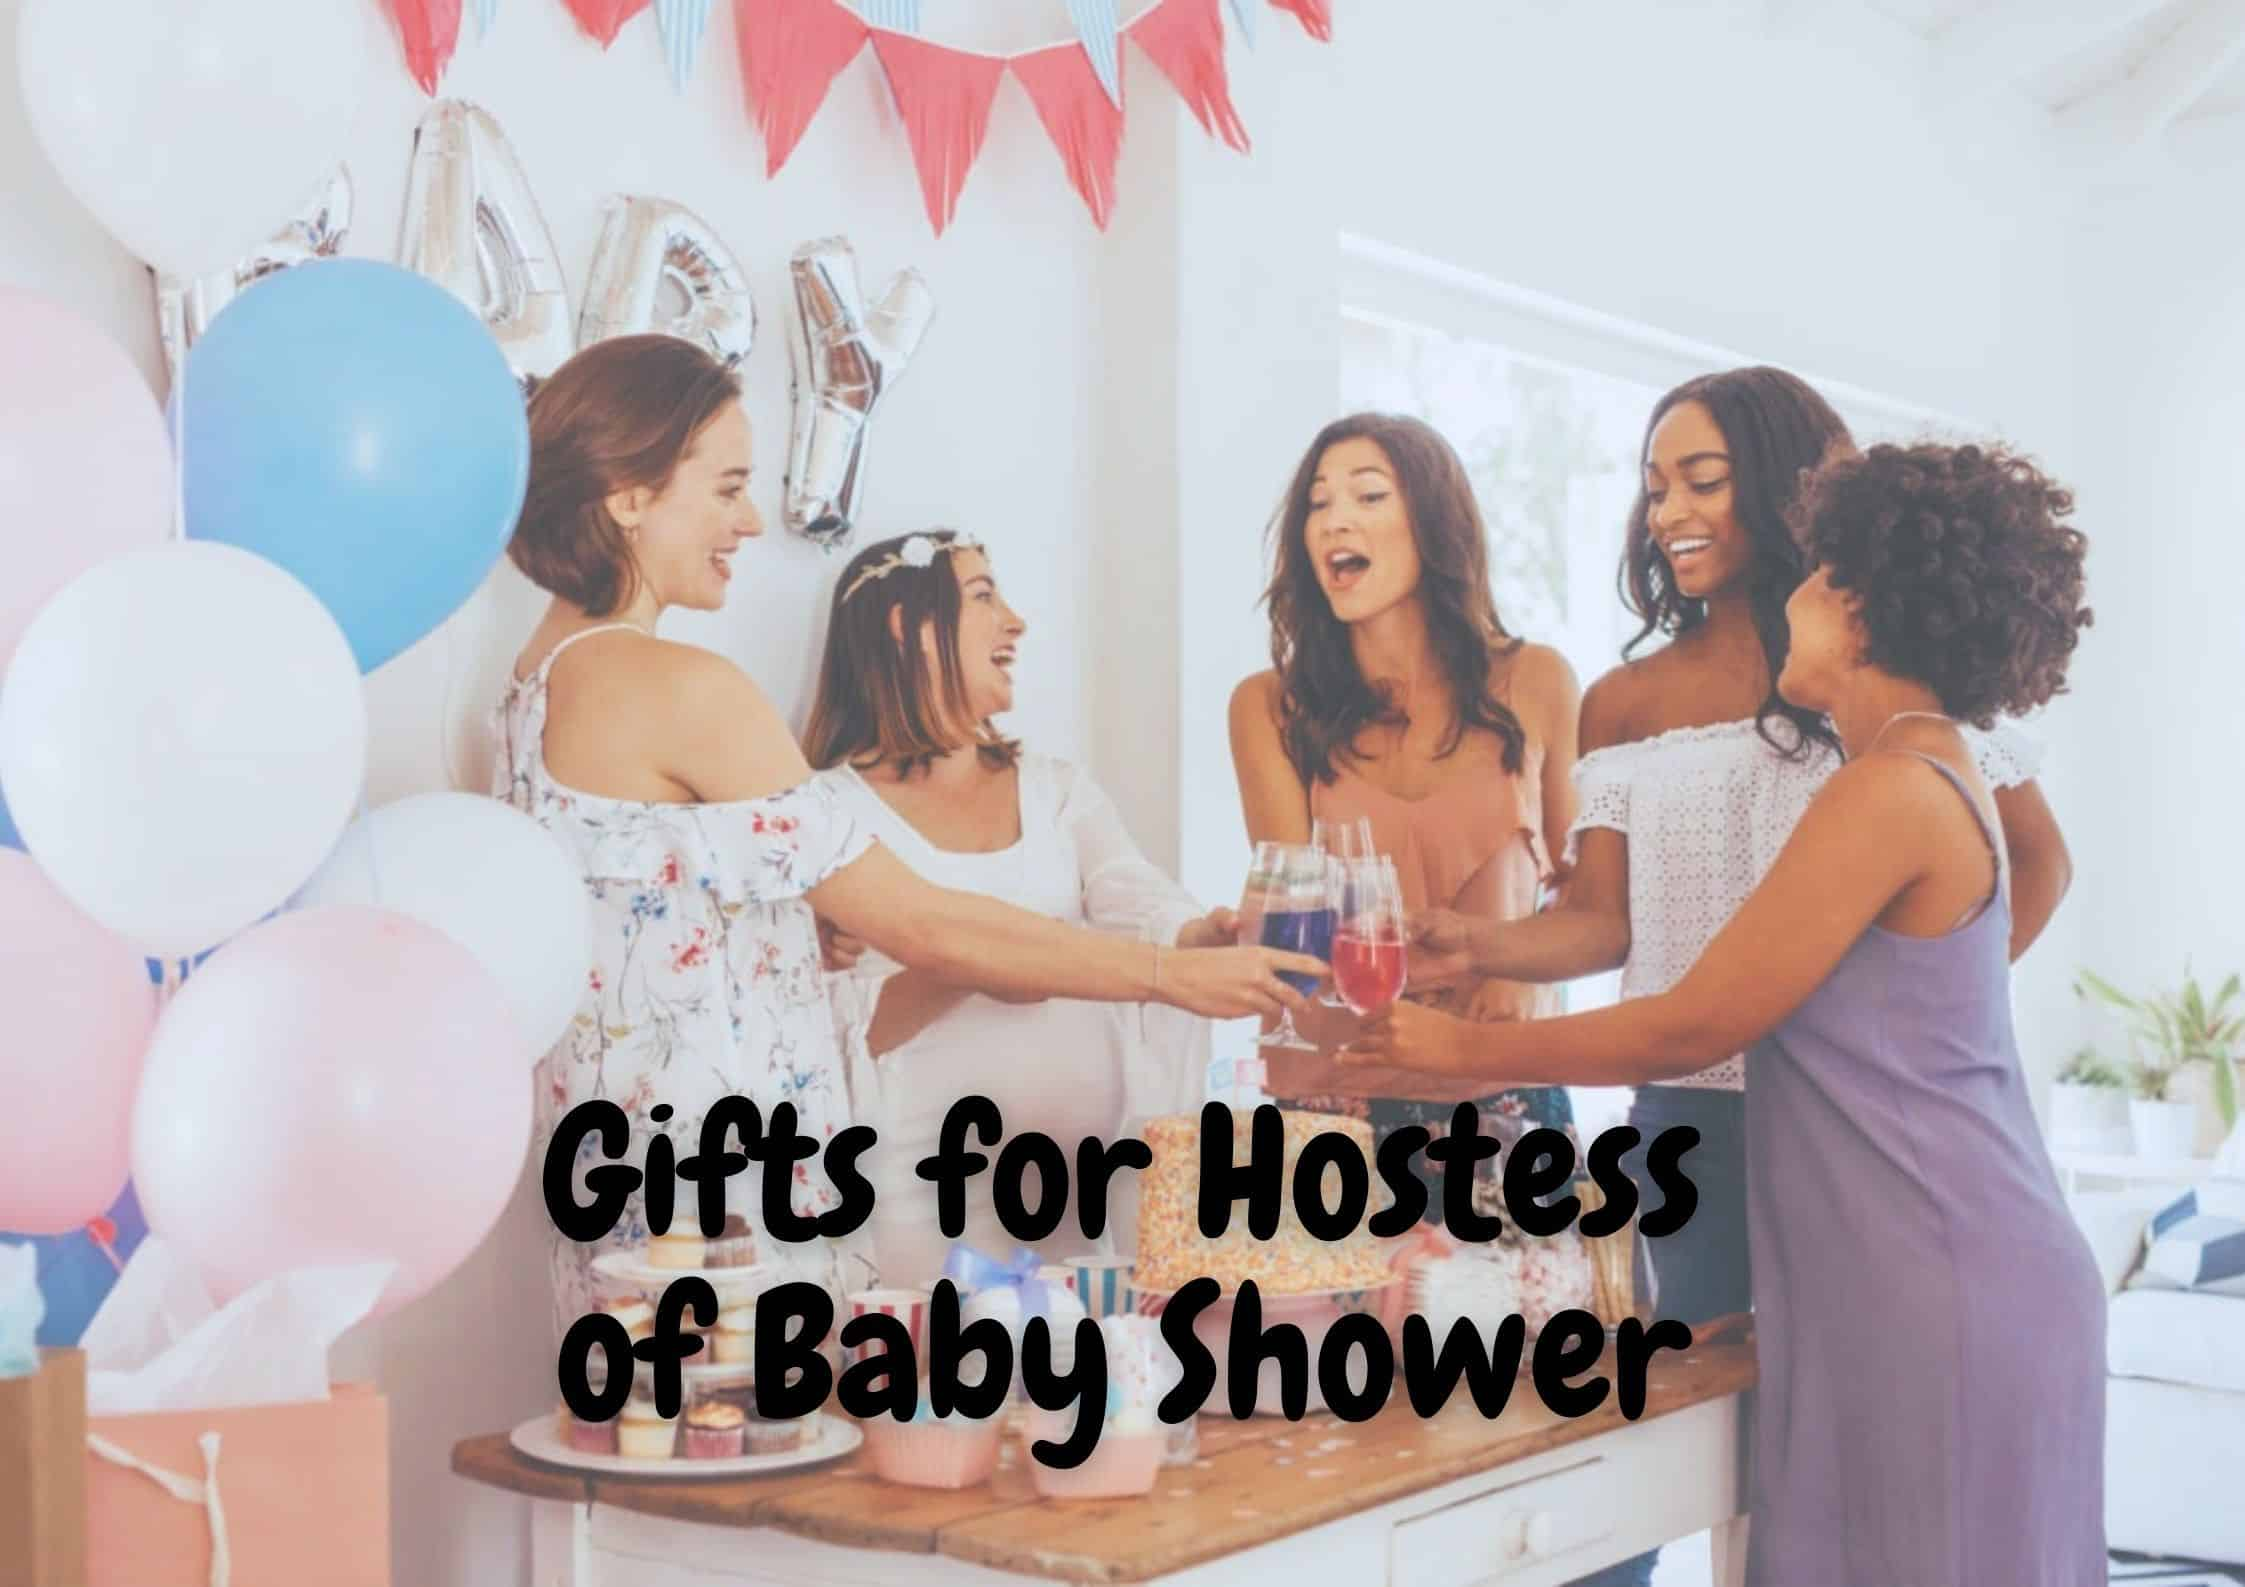 25+ Best Gifts for Hostess of Baby Shower